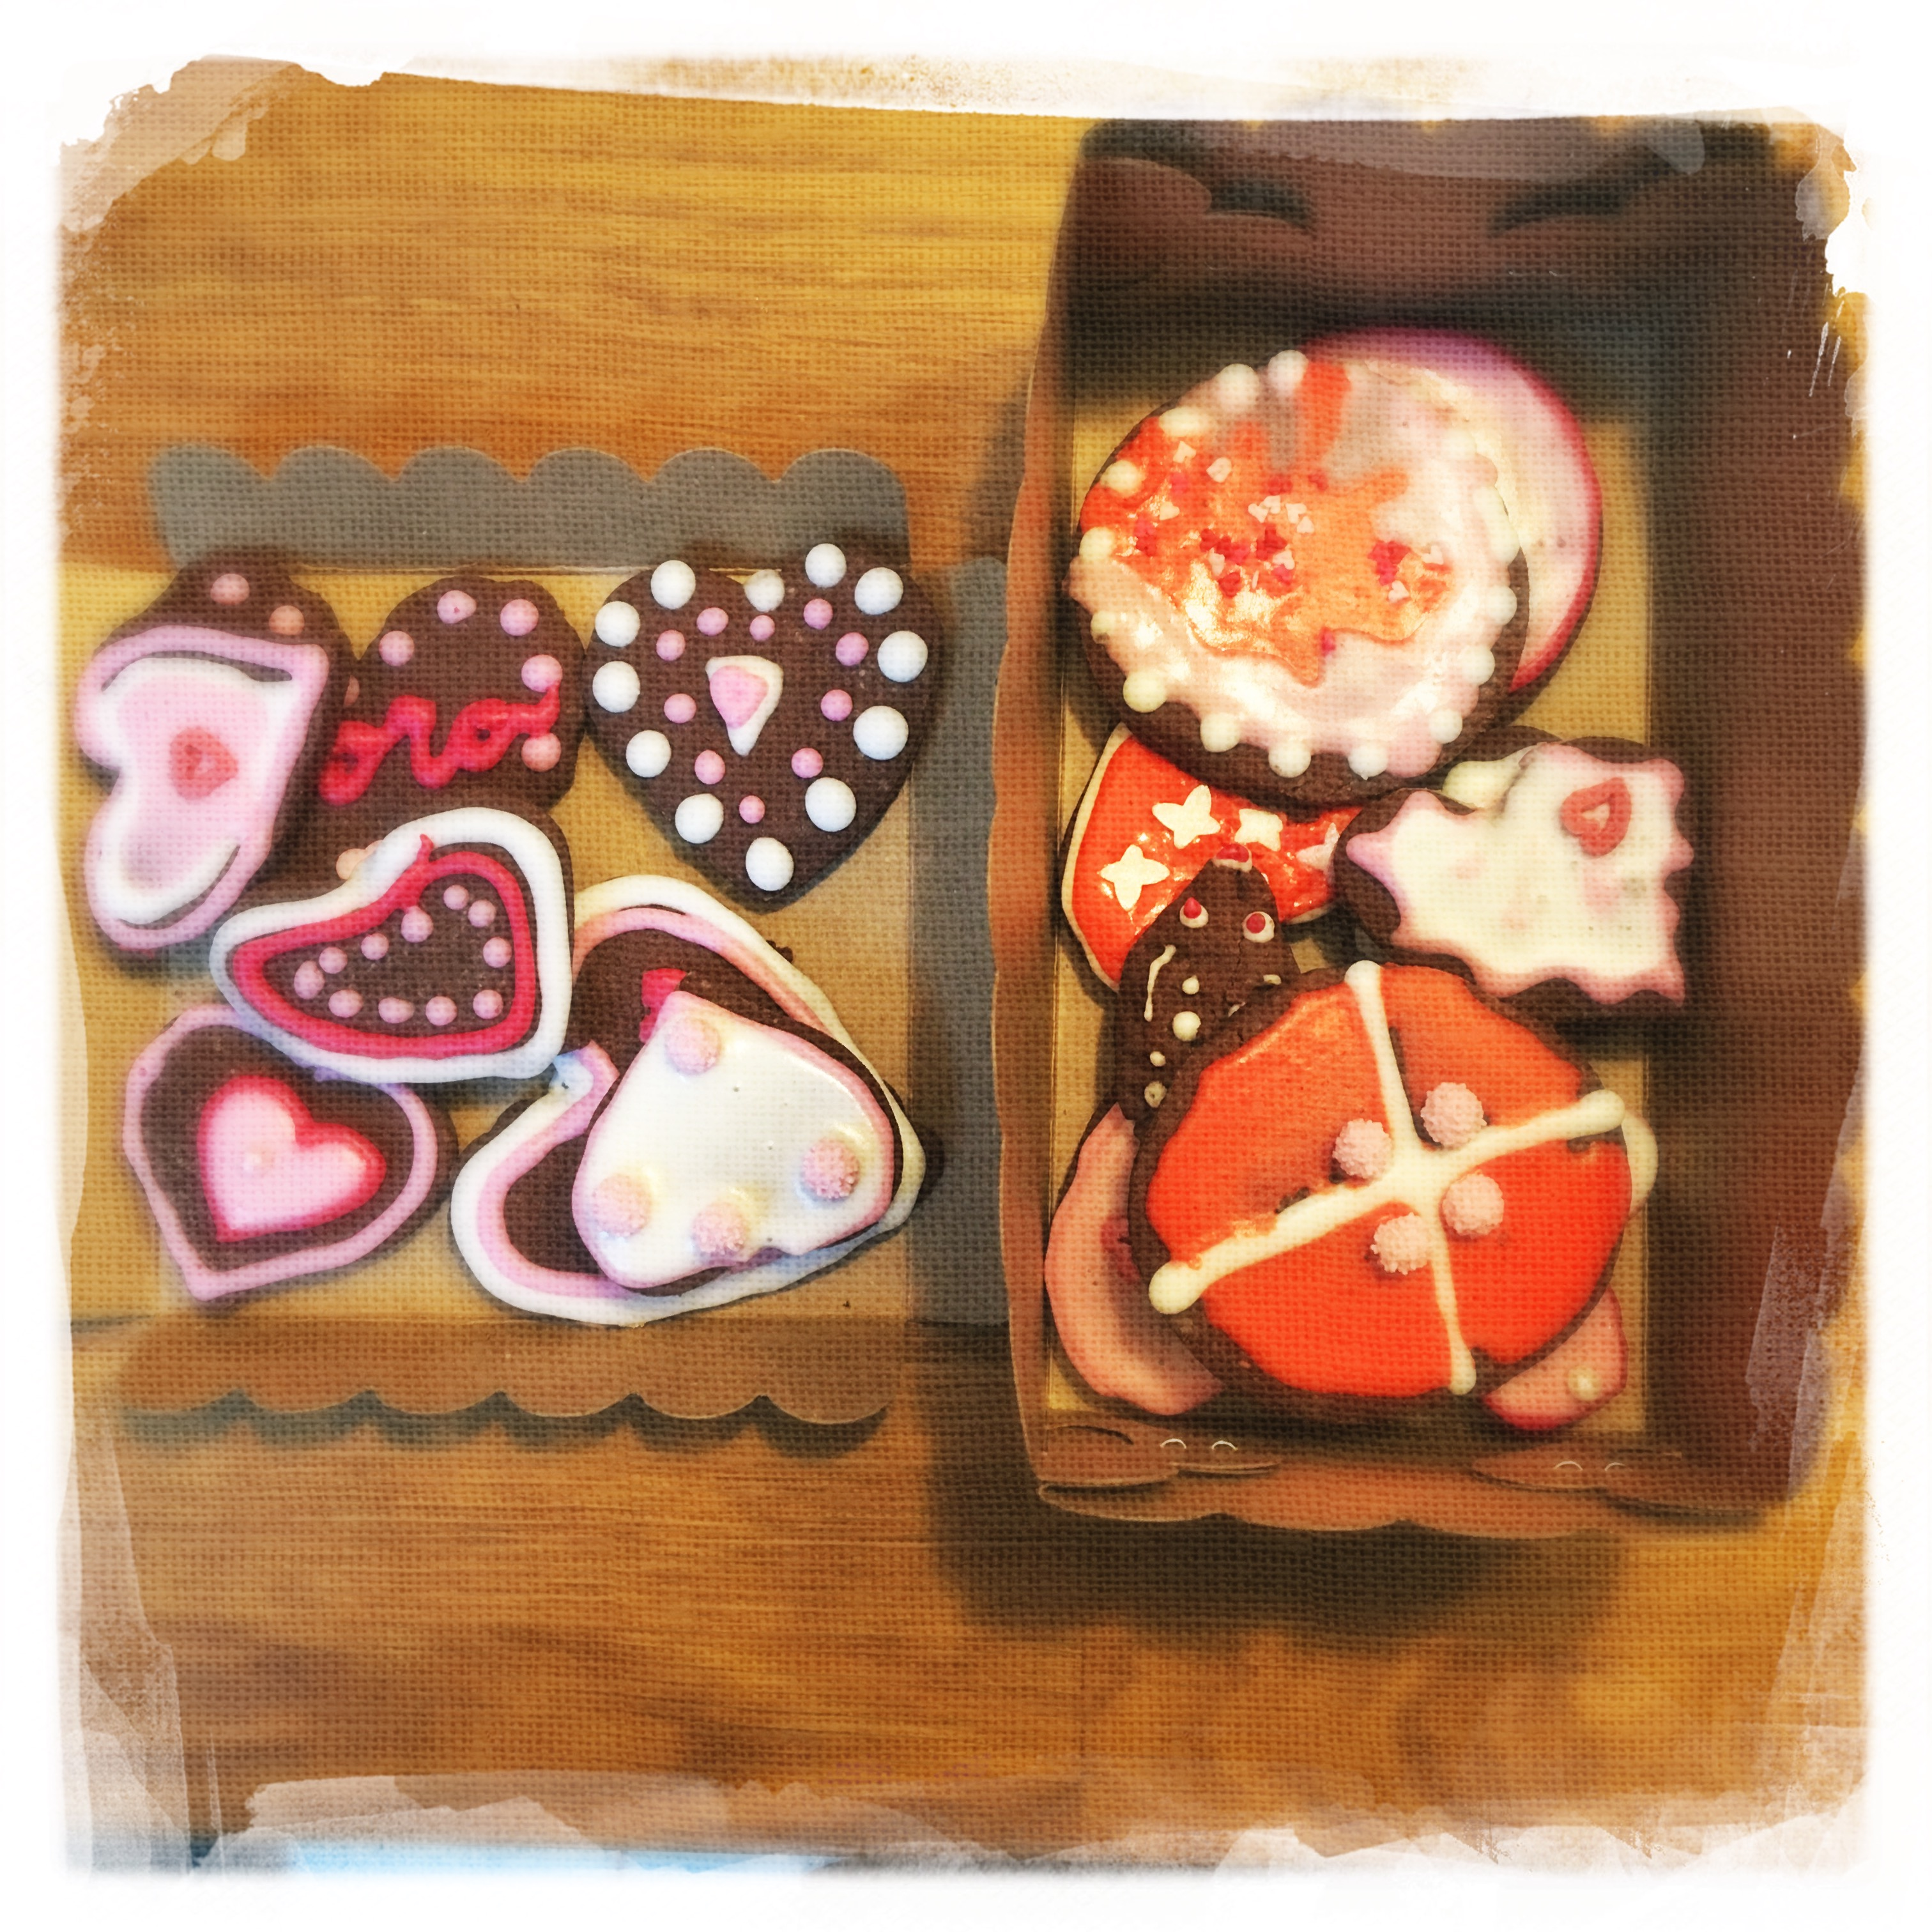 Cours Biscuits d'amour XXVII